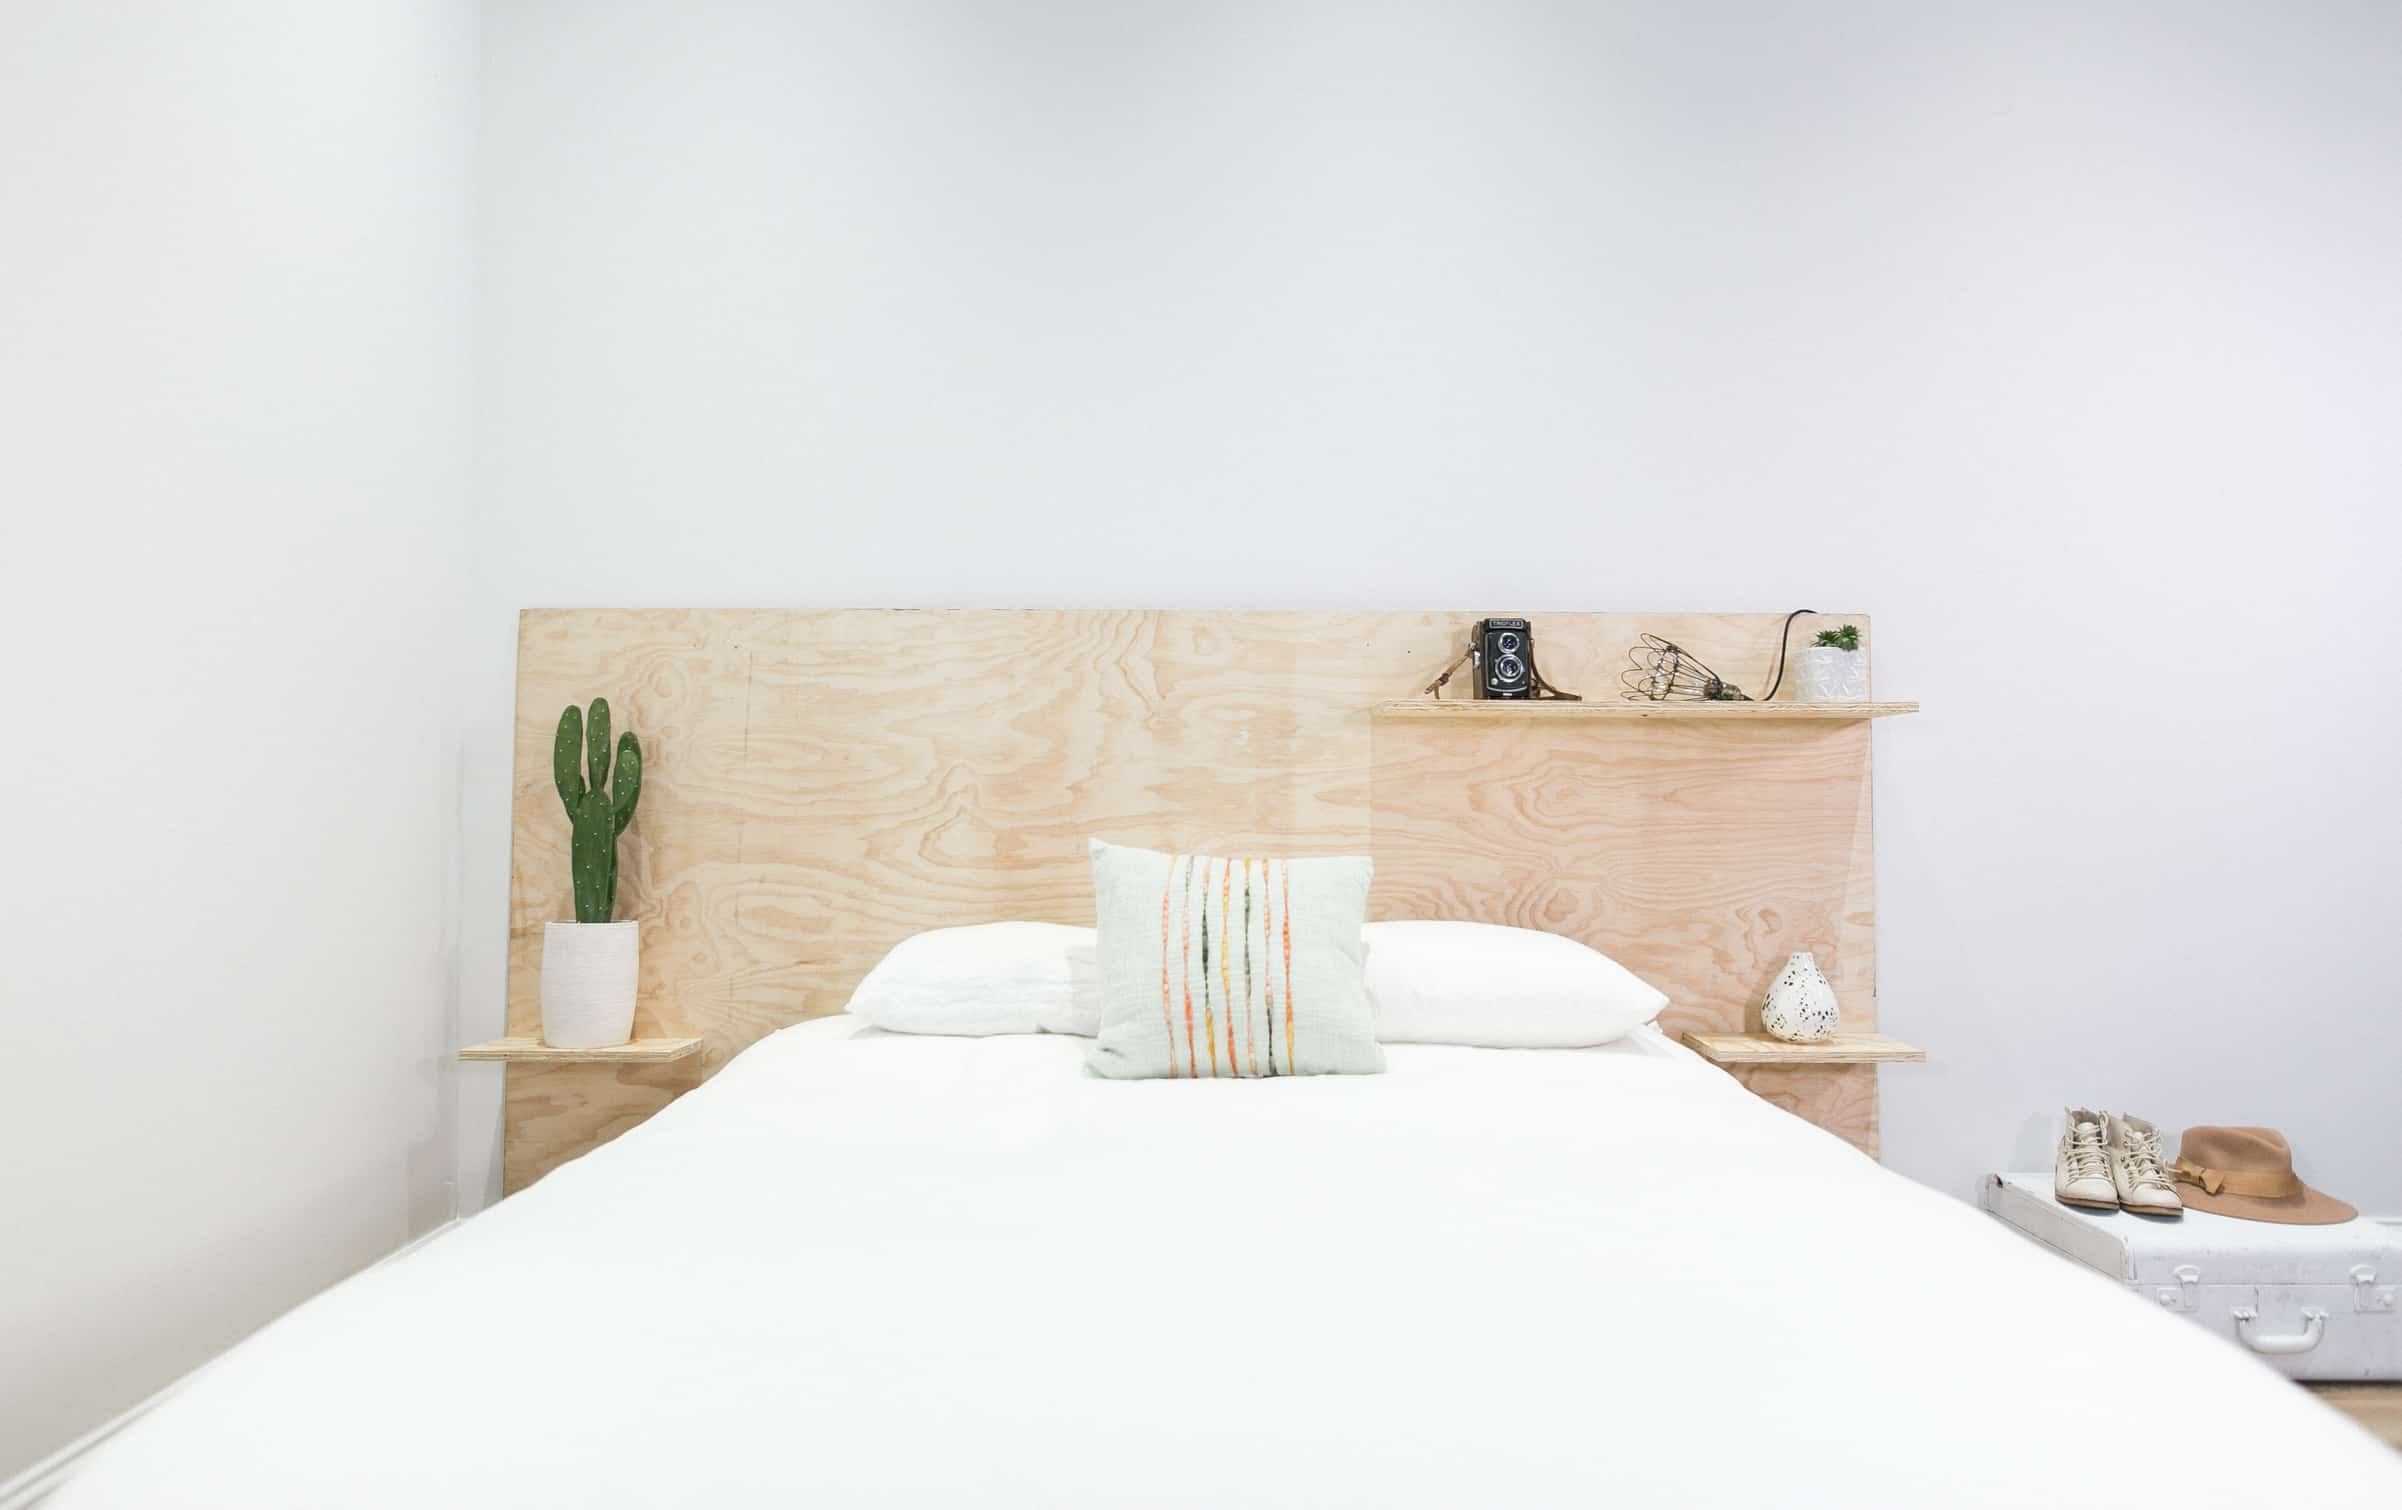 Plywood headboard with shelves